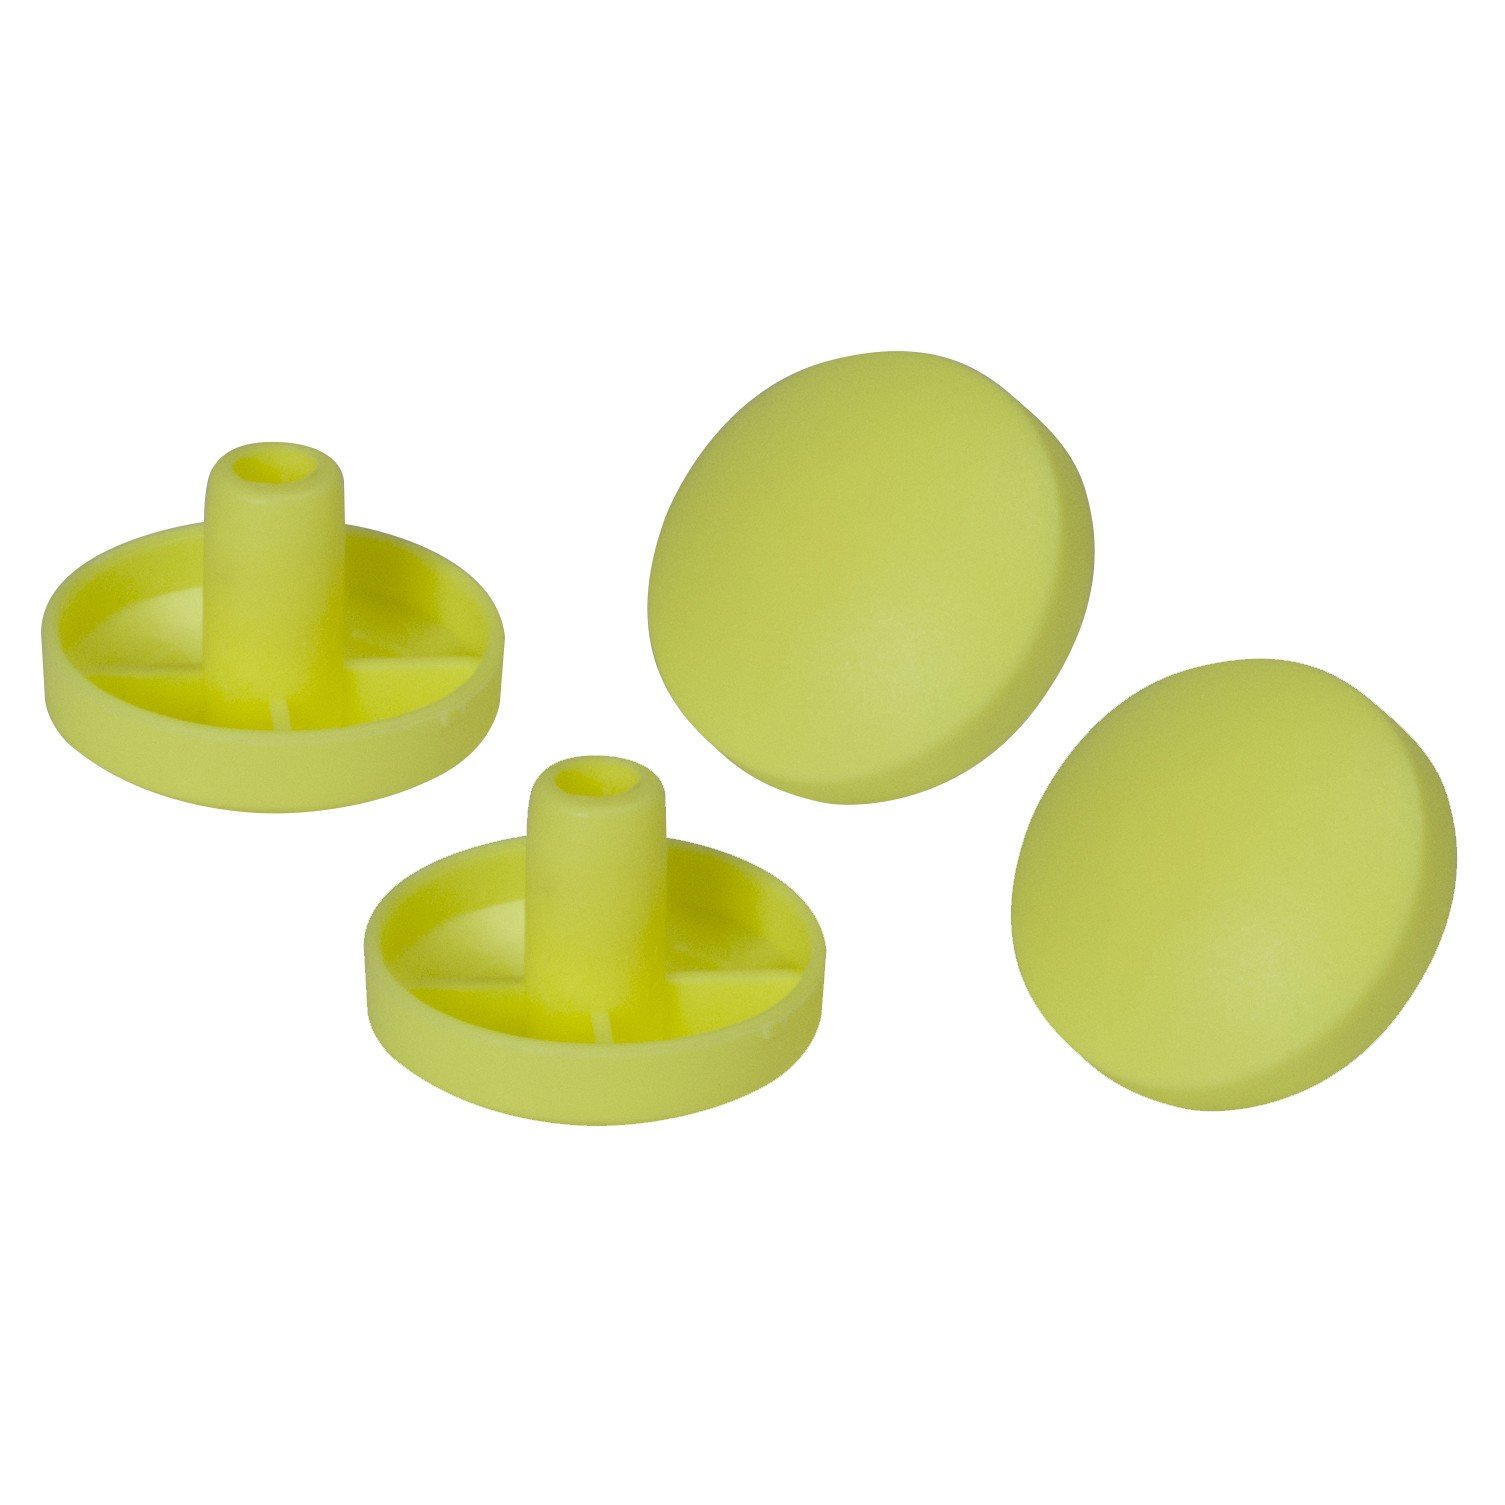 DRIVE Replacement Tennis Ball Glides Pads